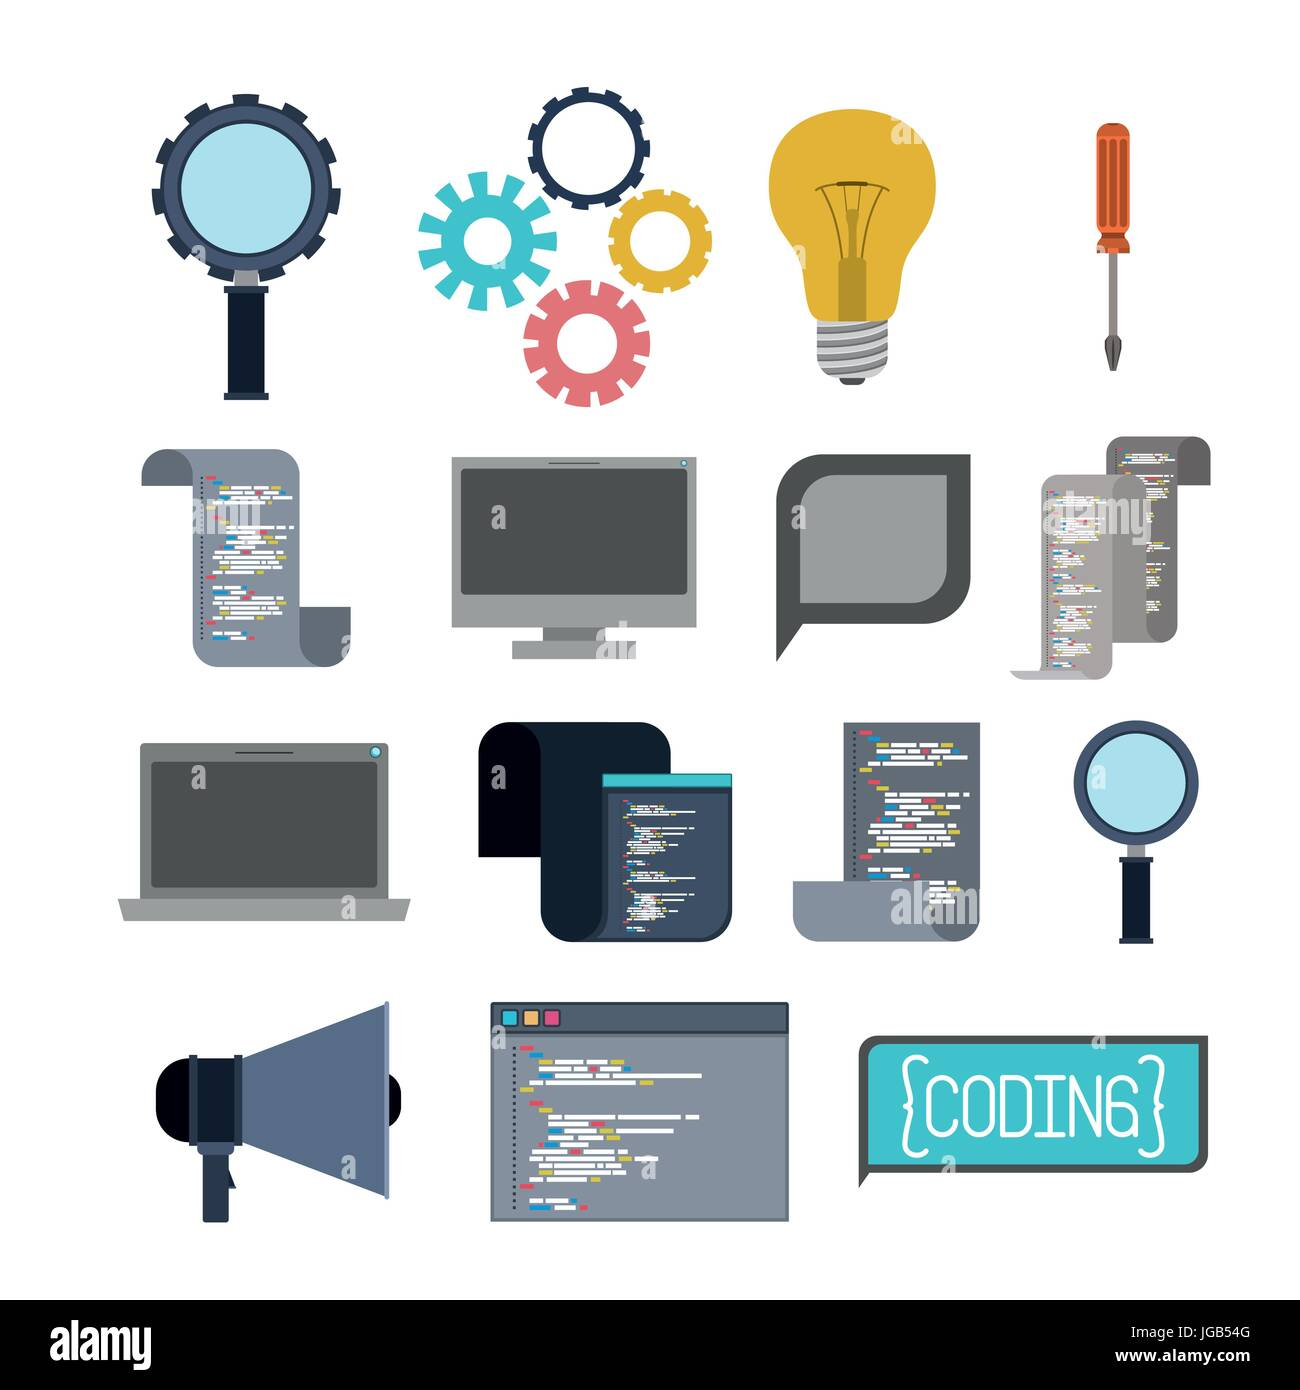 colorful set of icons elements of programming codes language - Stock Image